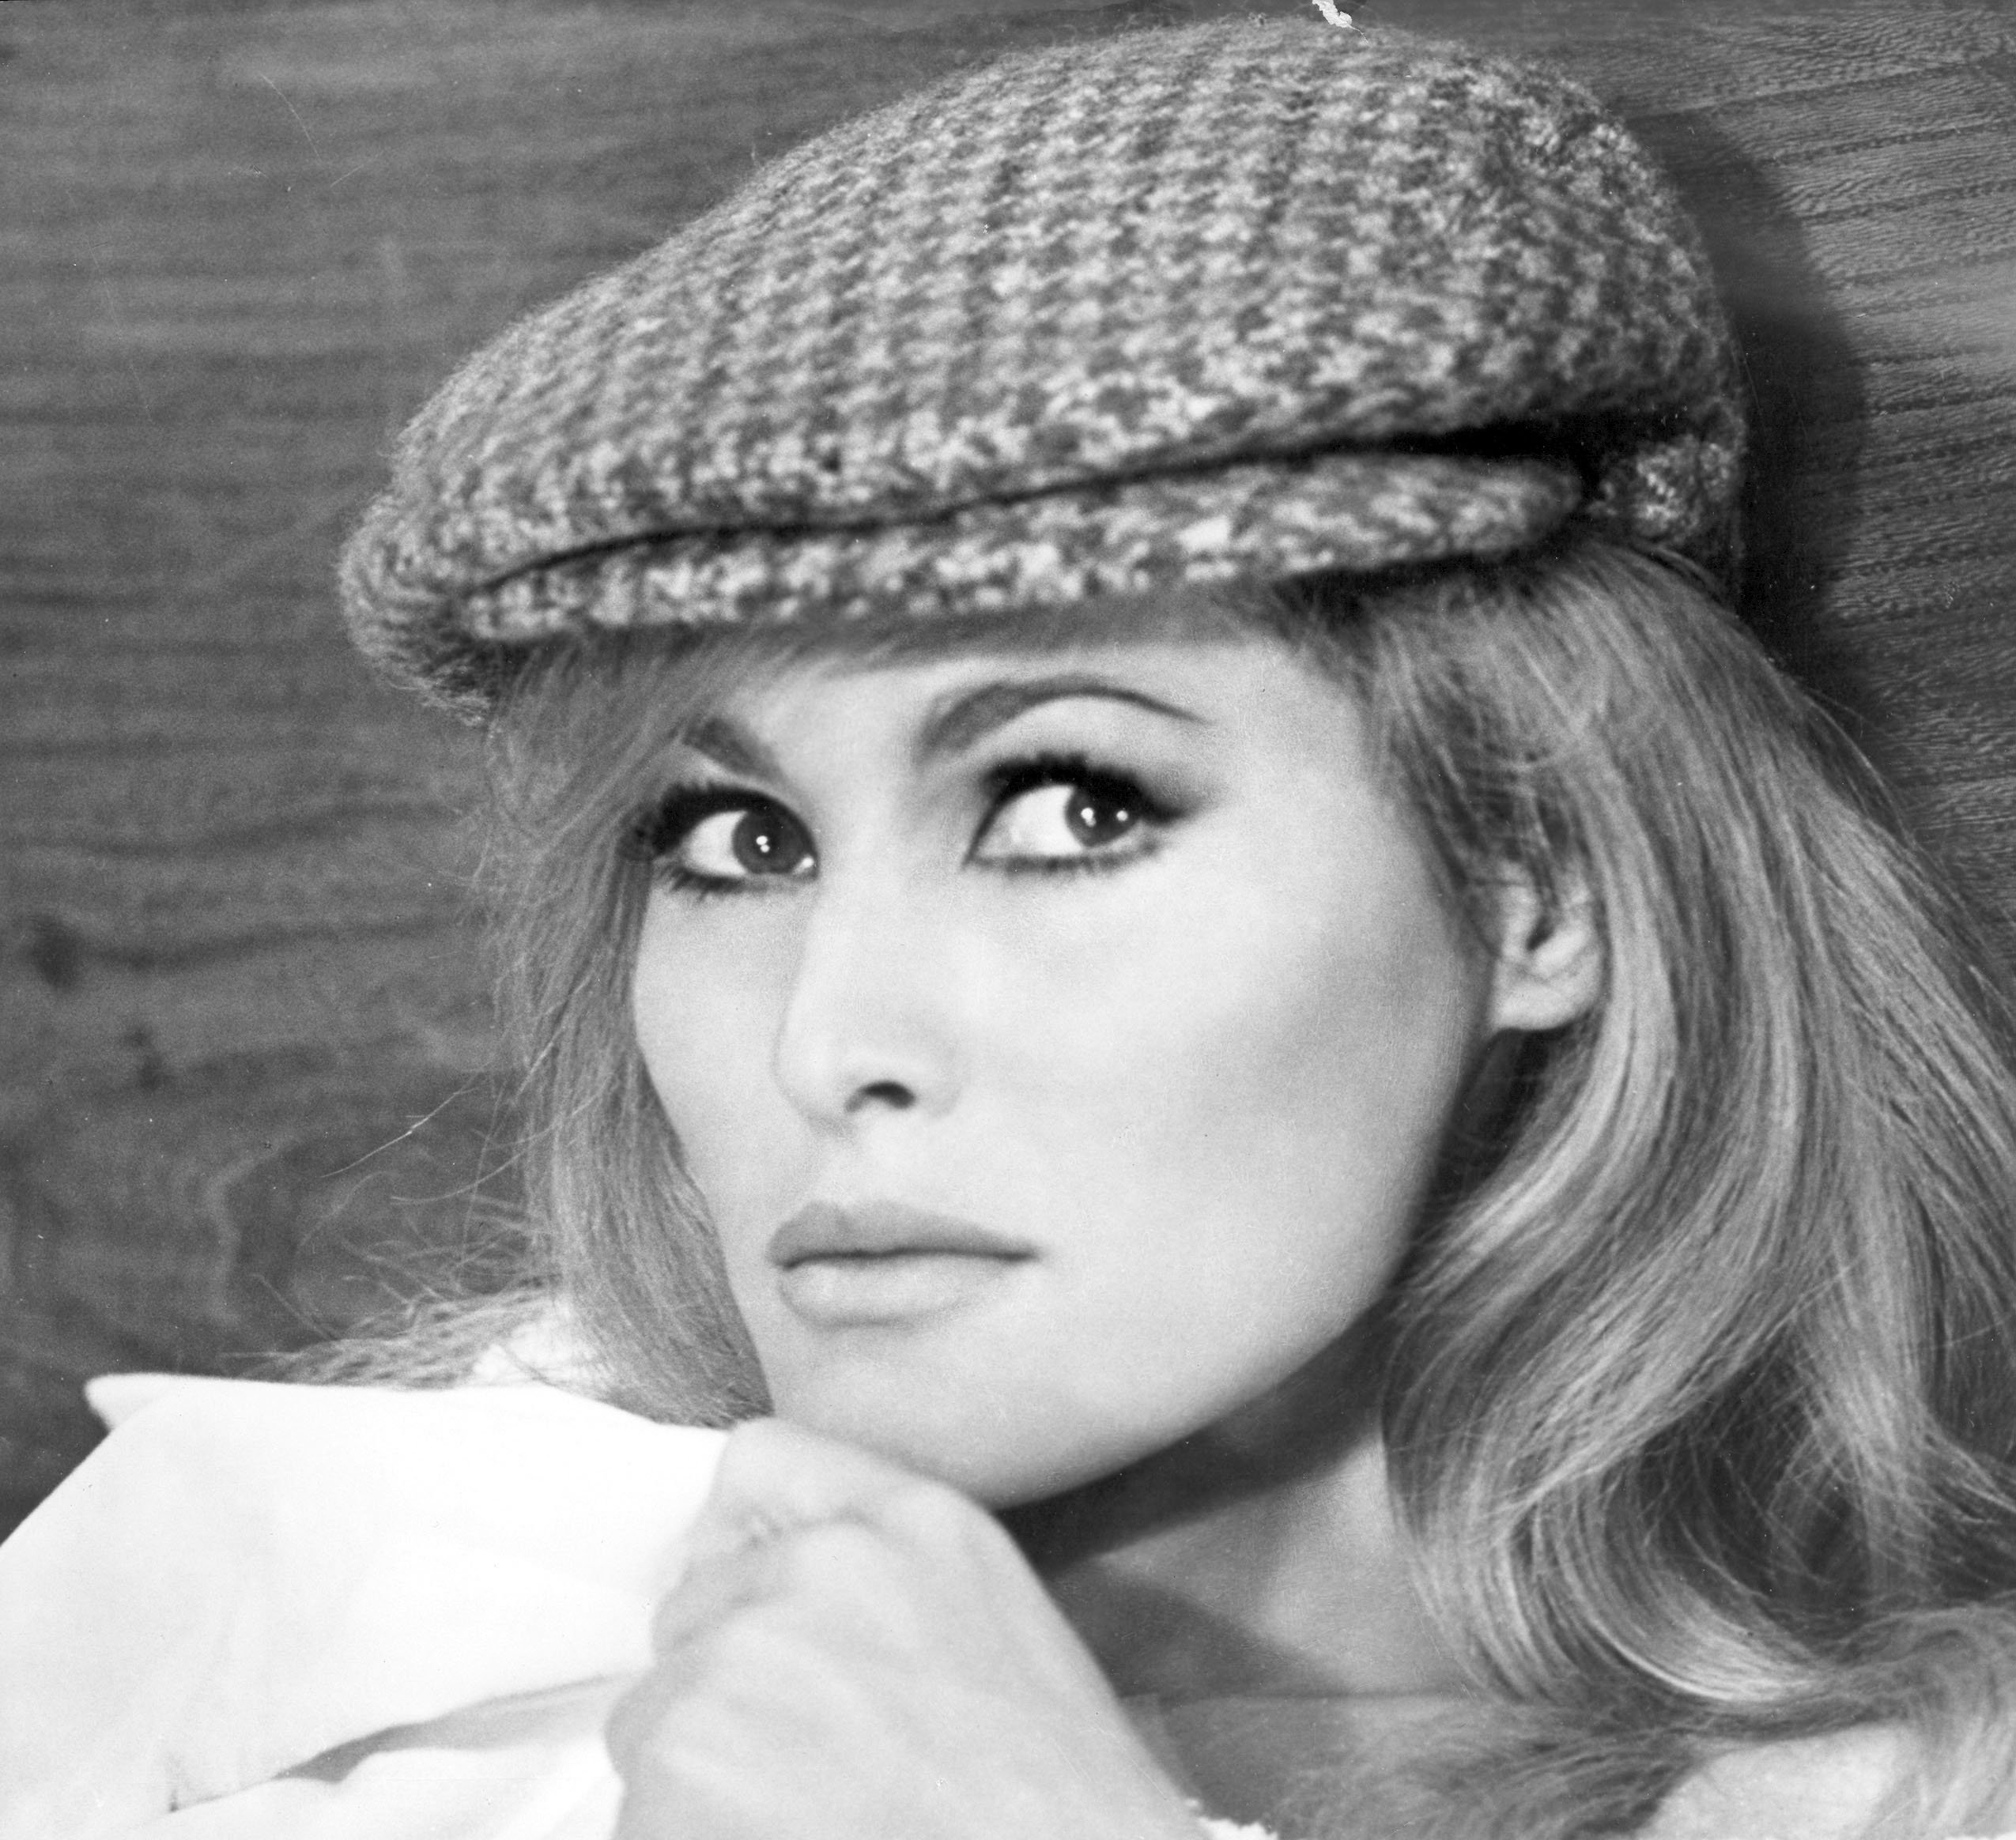 Ursula Andress Wallpapers High Quality | Download Free